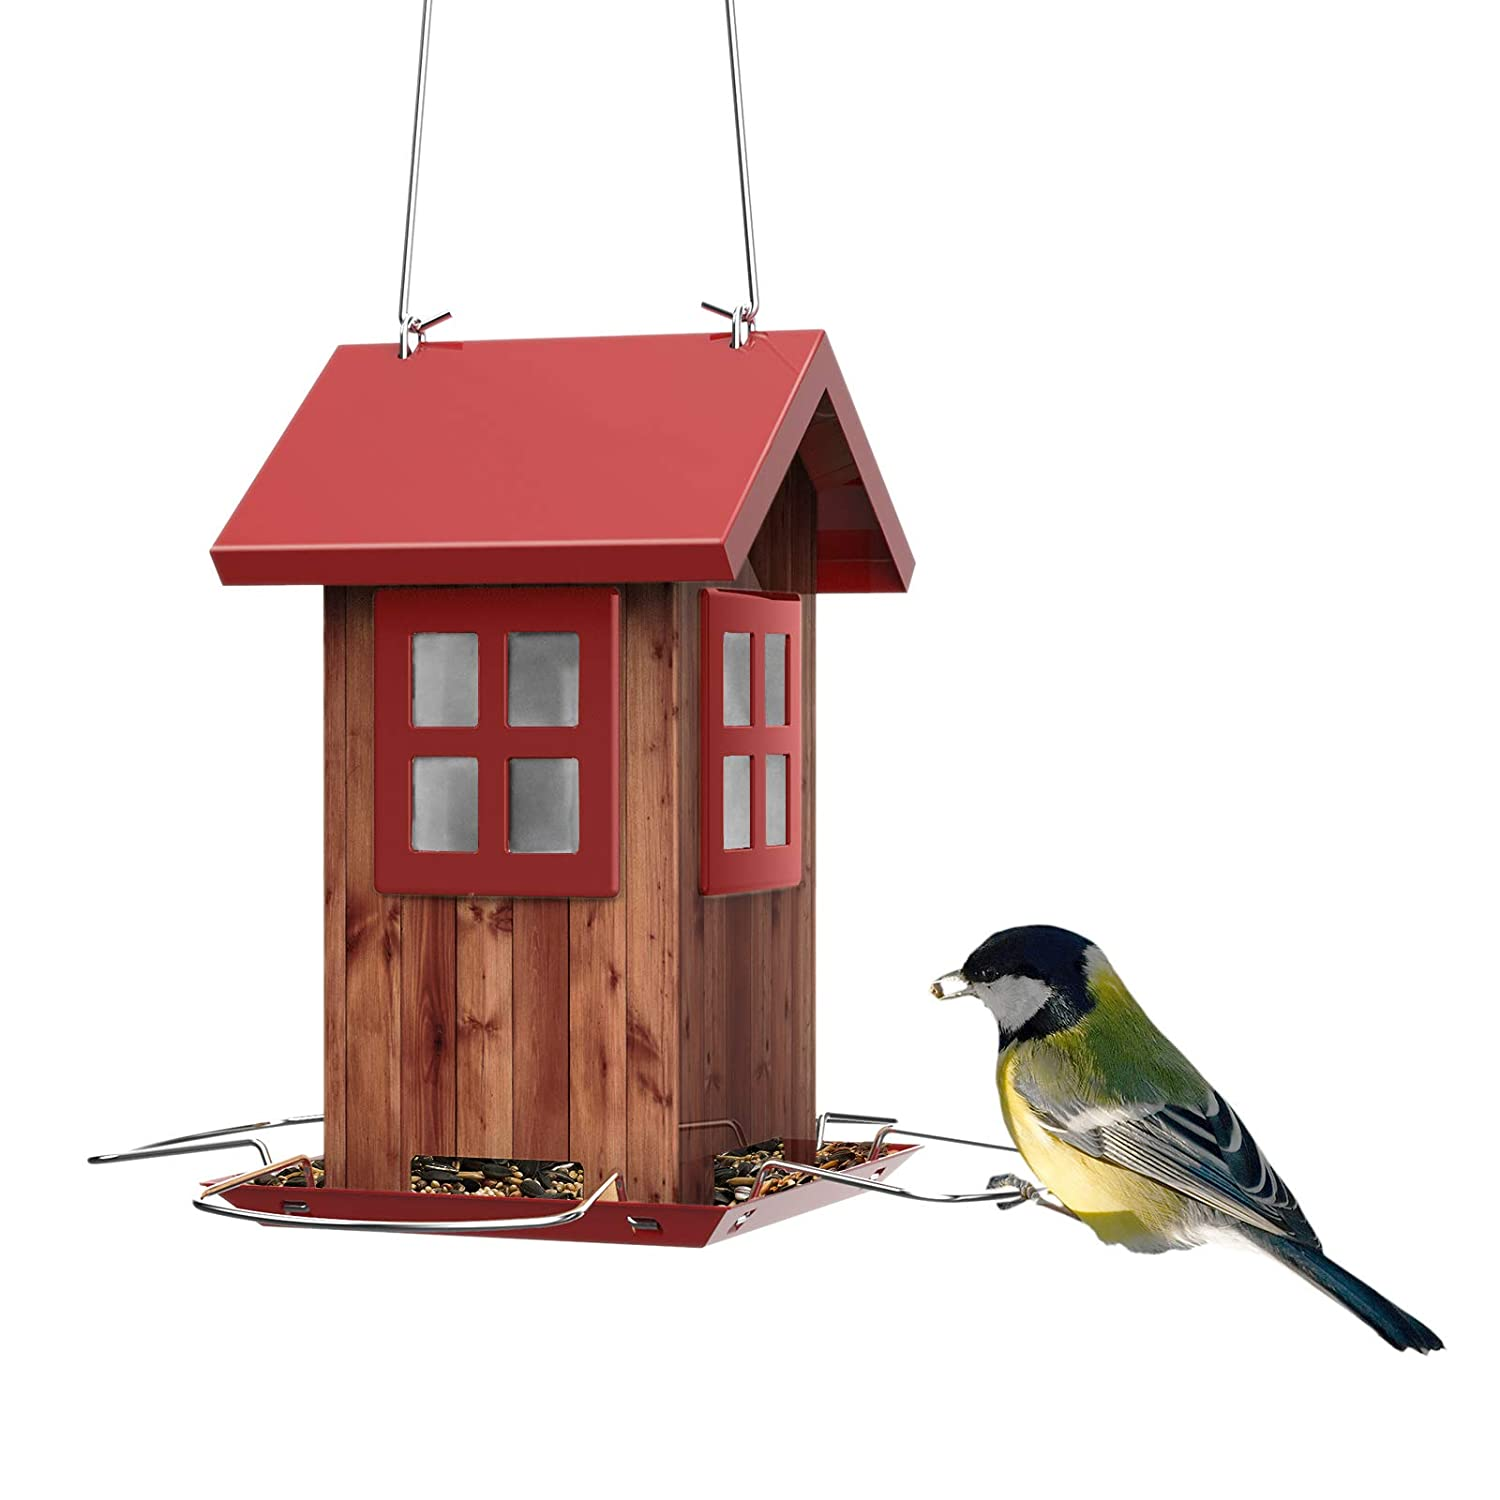 Kingsyard Bird Feeders for Outside Hanging Small Metal Bird House 0.8lb on wood bird house plans free, cardinal bird house plans free, thrush bird house plans free, dove bird house plans free, woodpecker bird house plans free, owl bird house plans free, oriole bird house plans free,